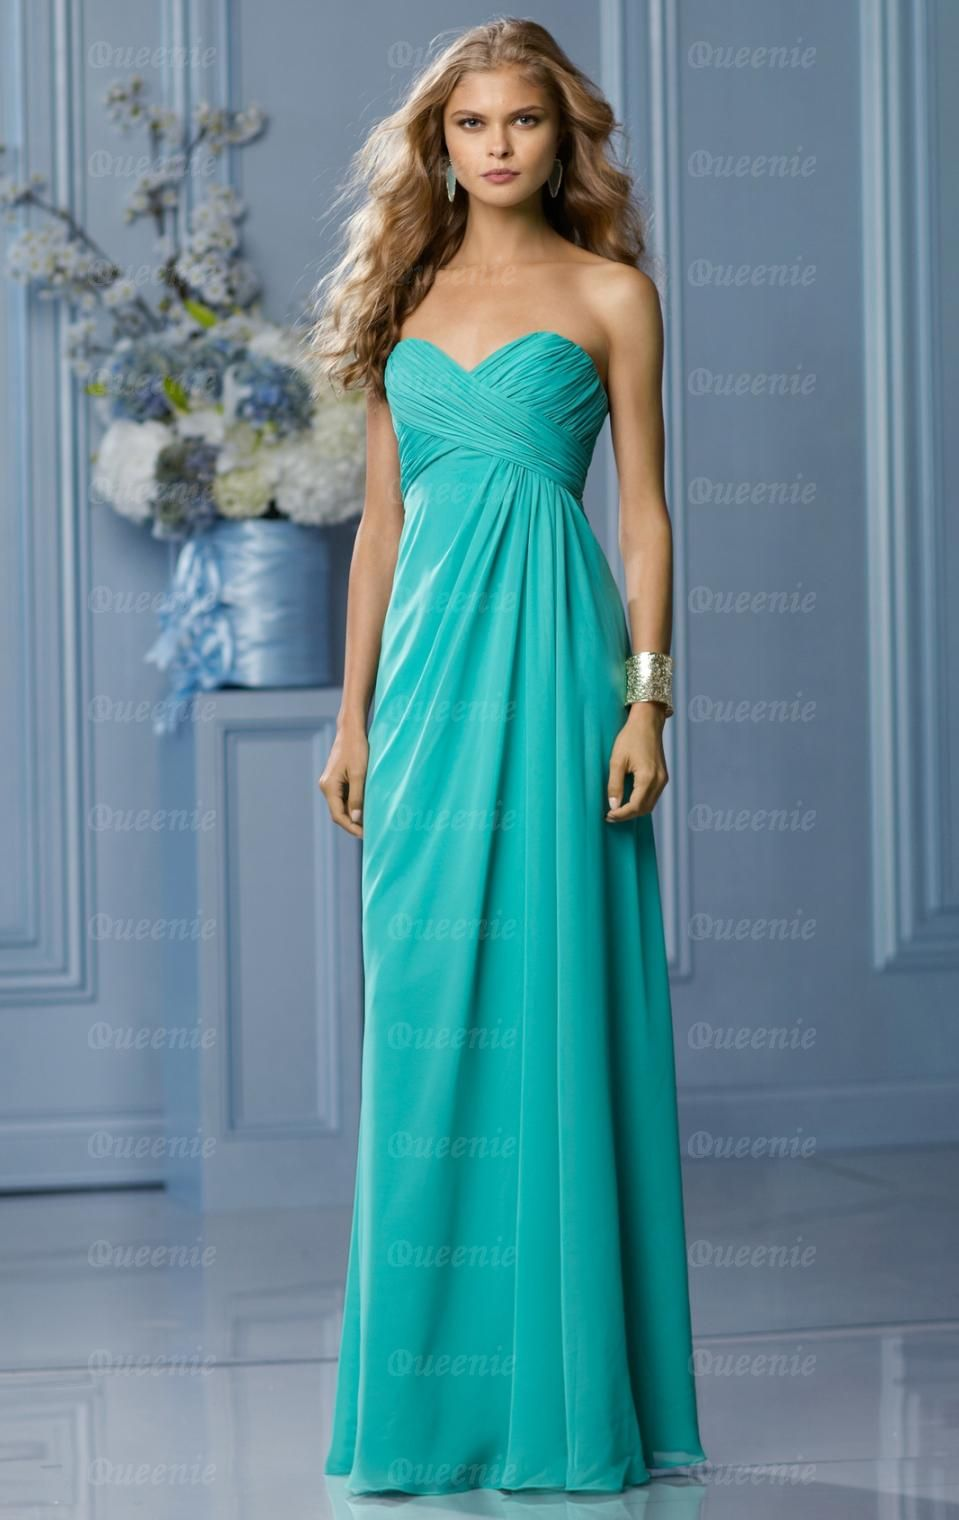 stylish-chiffon-light-turquoise-bridesmaid-dress | Wedding Ideas ...